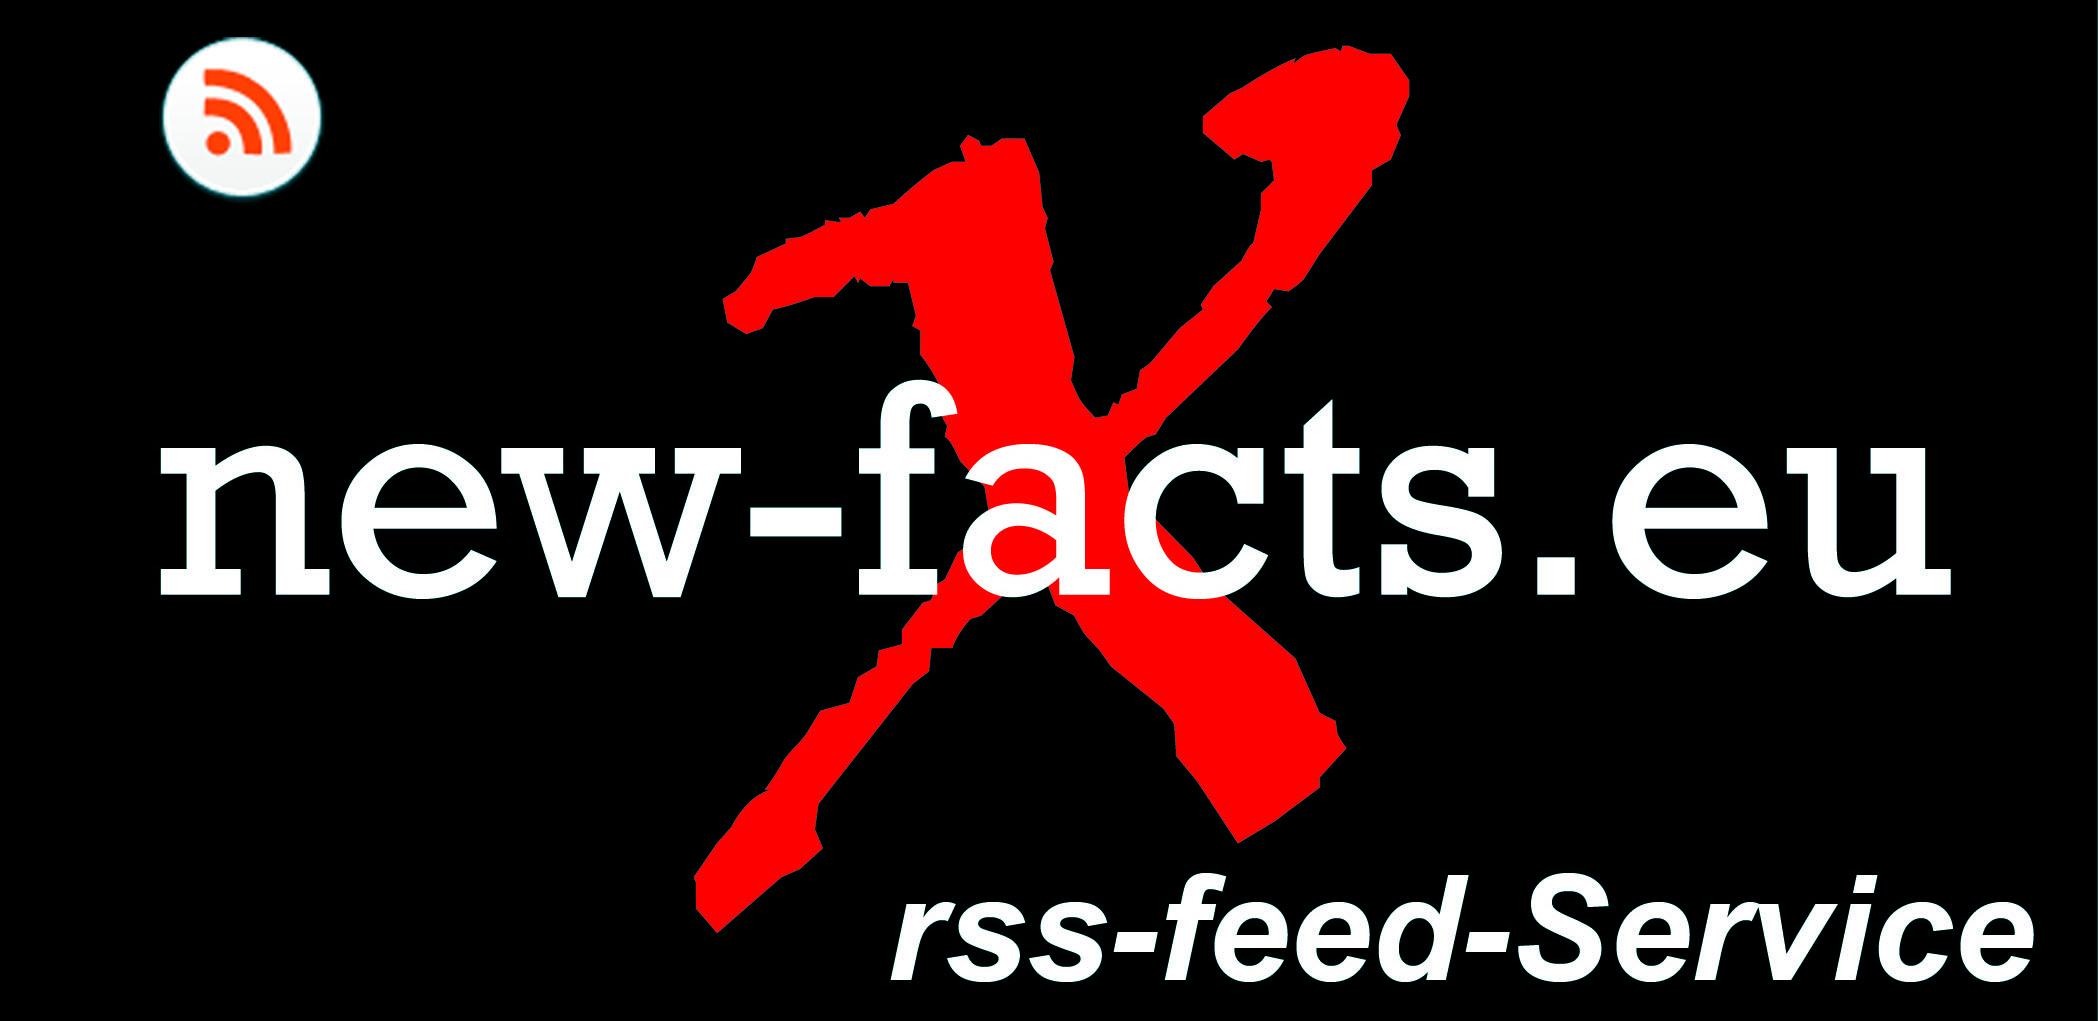 Logo new-facts-rss-feed